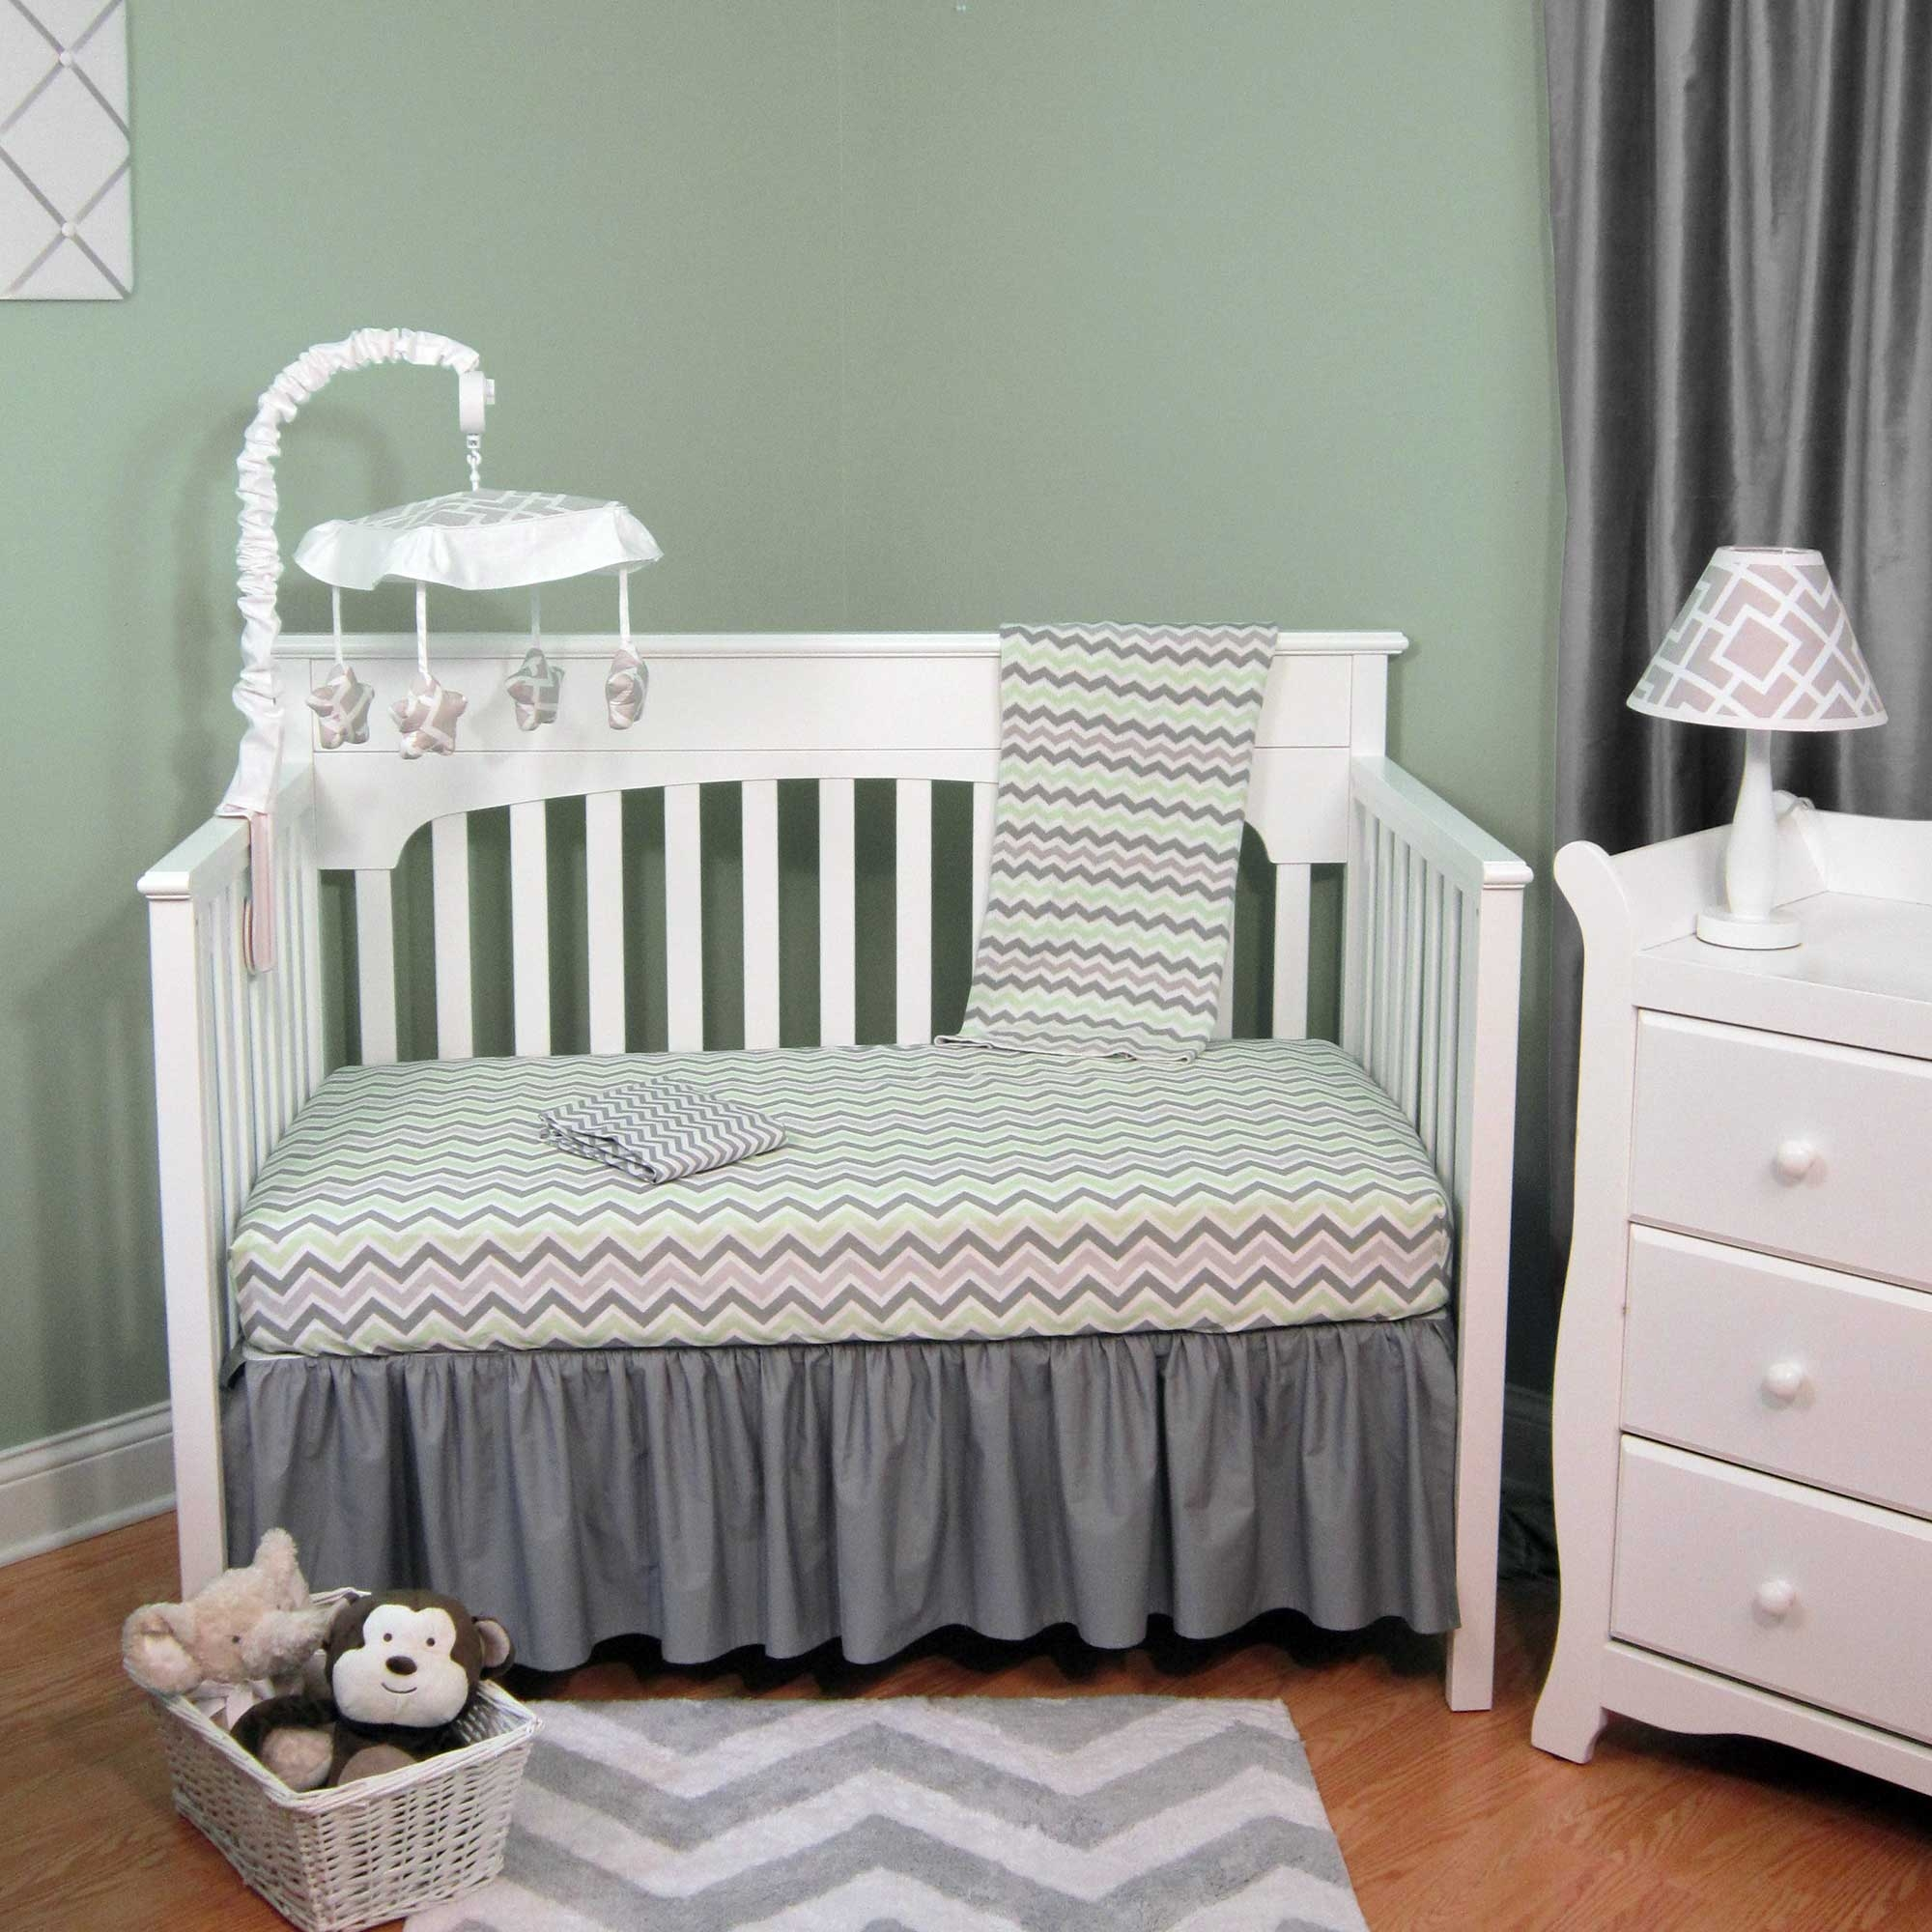 Green & Gray Chevron 4 Piece Baby Crib Bedding Set